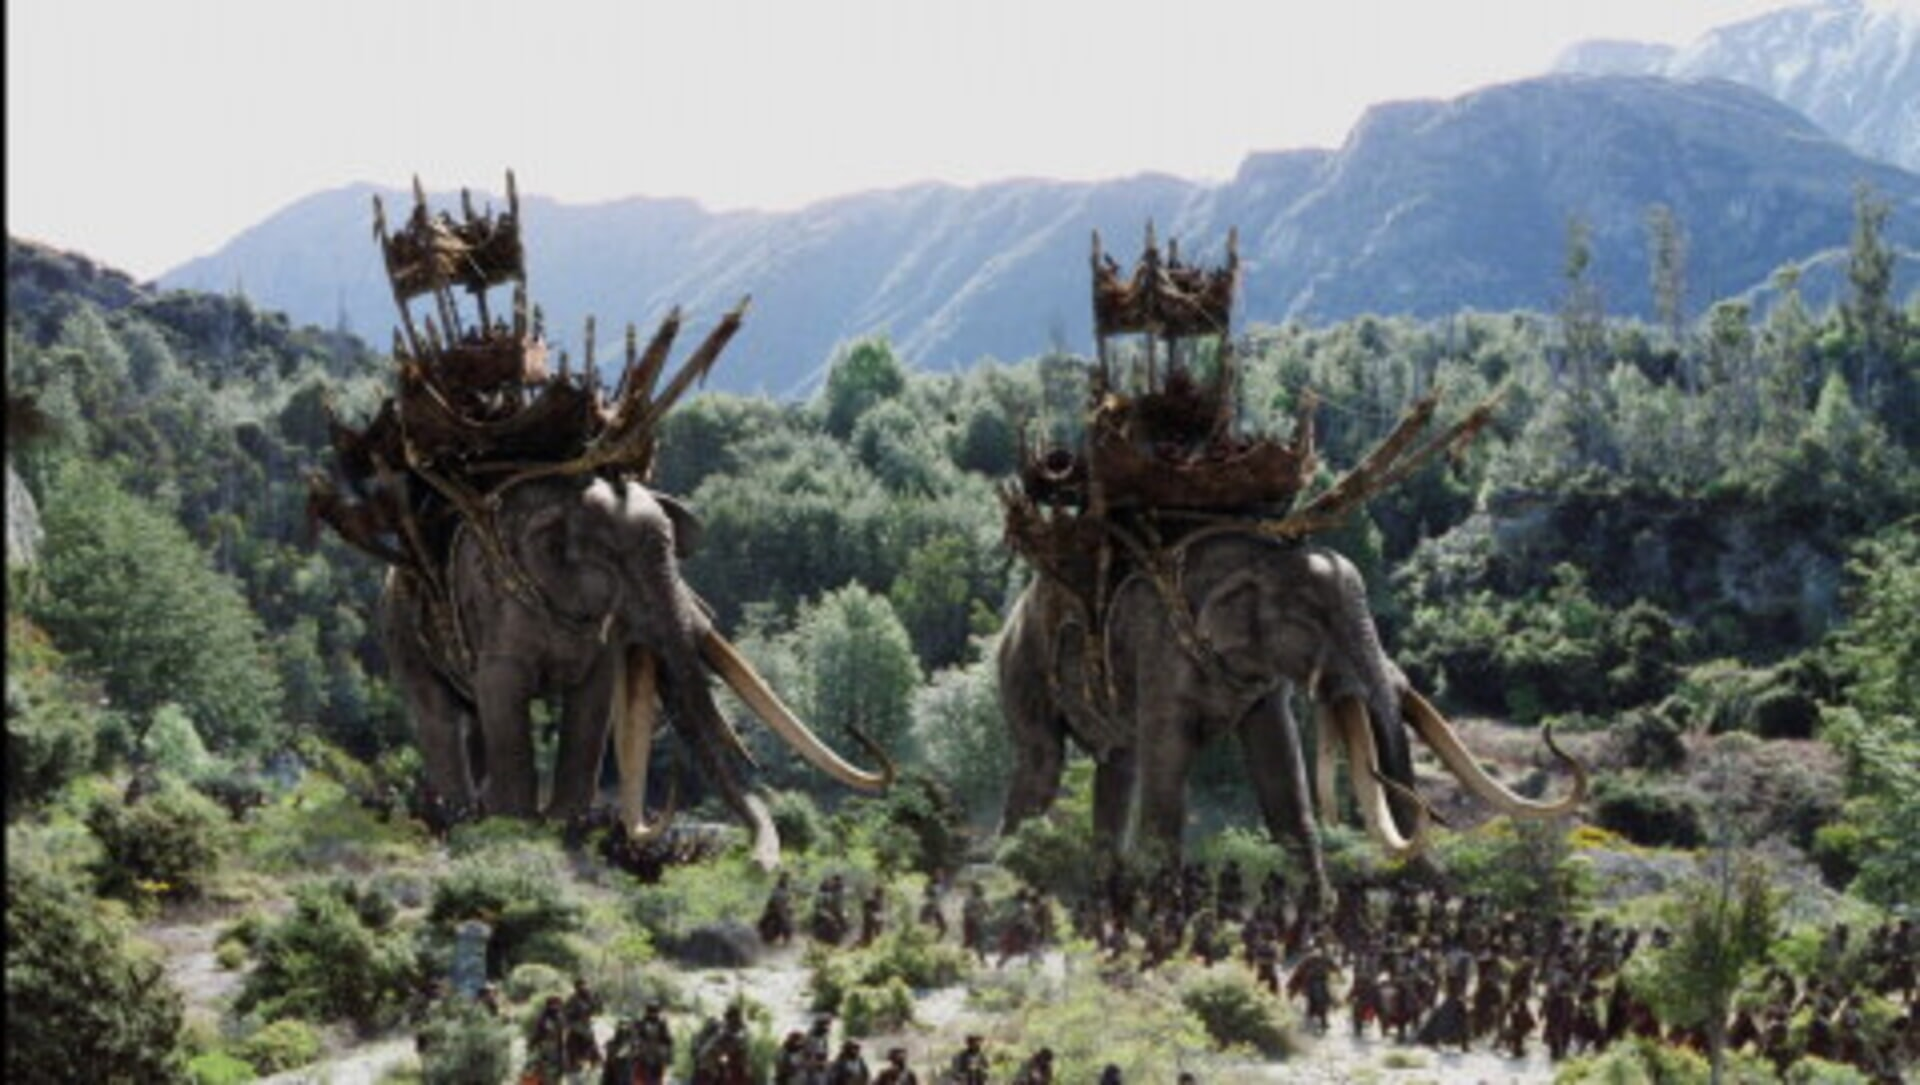 The Lord of the Rings: The Two Towers - Image 42